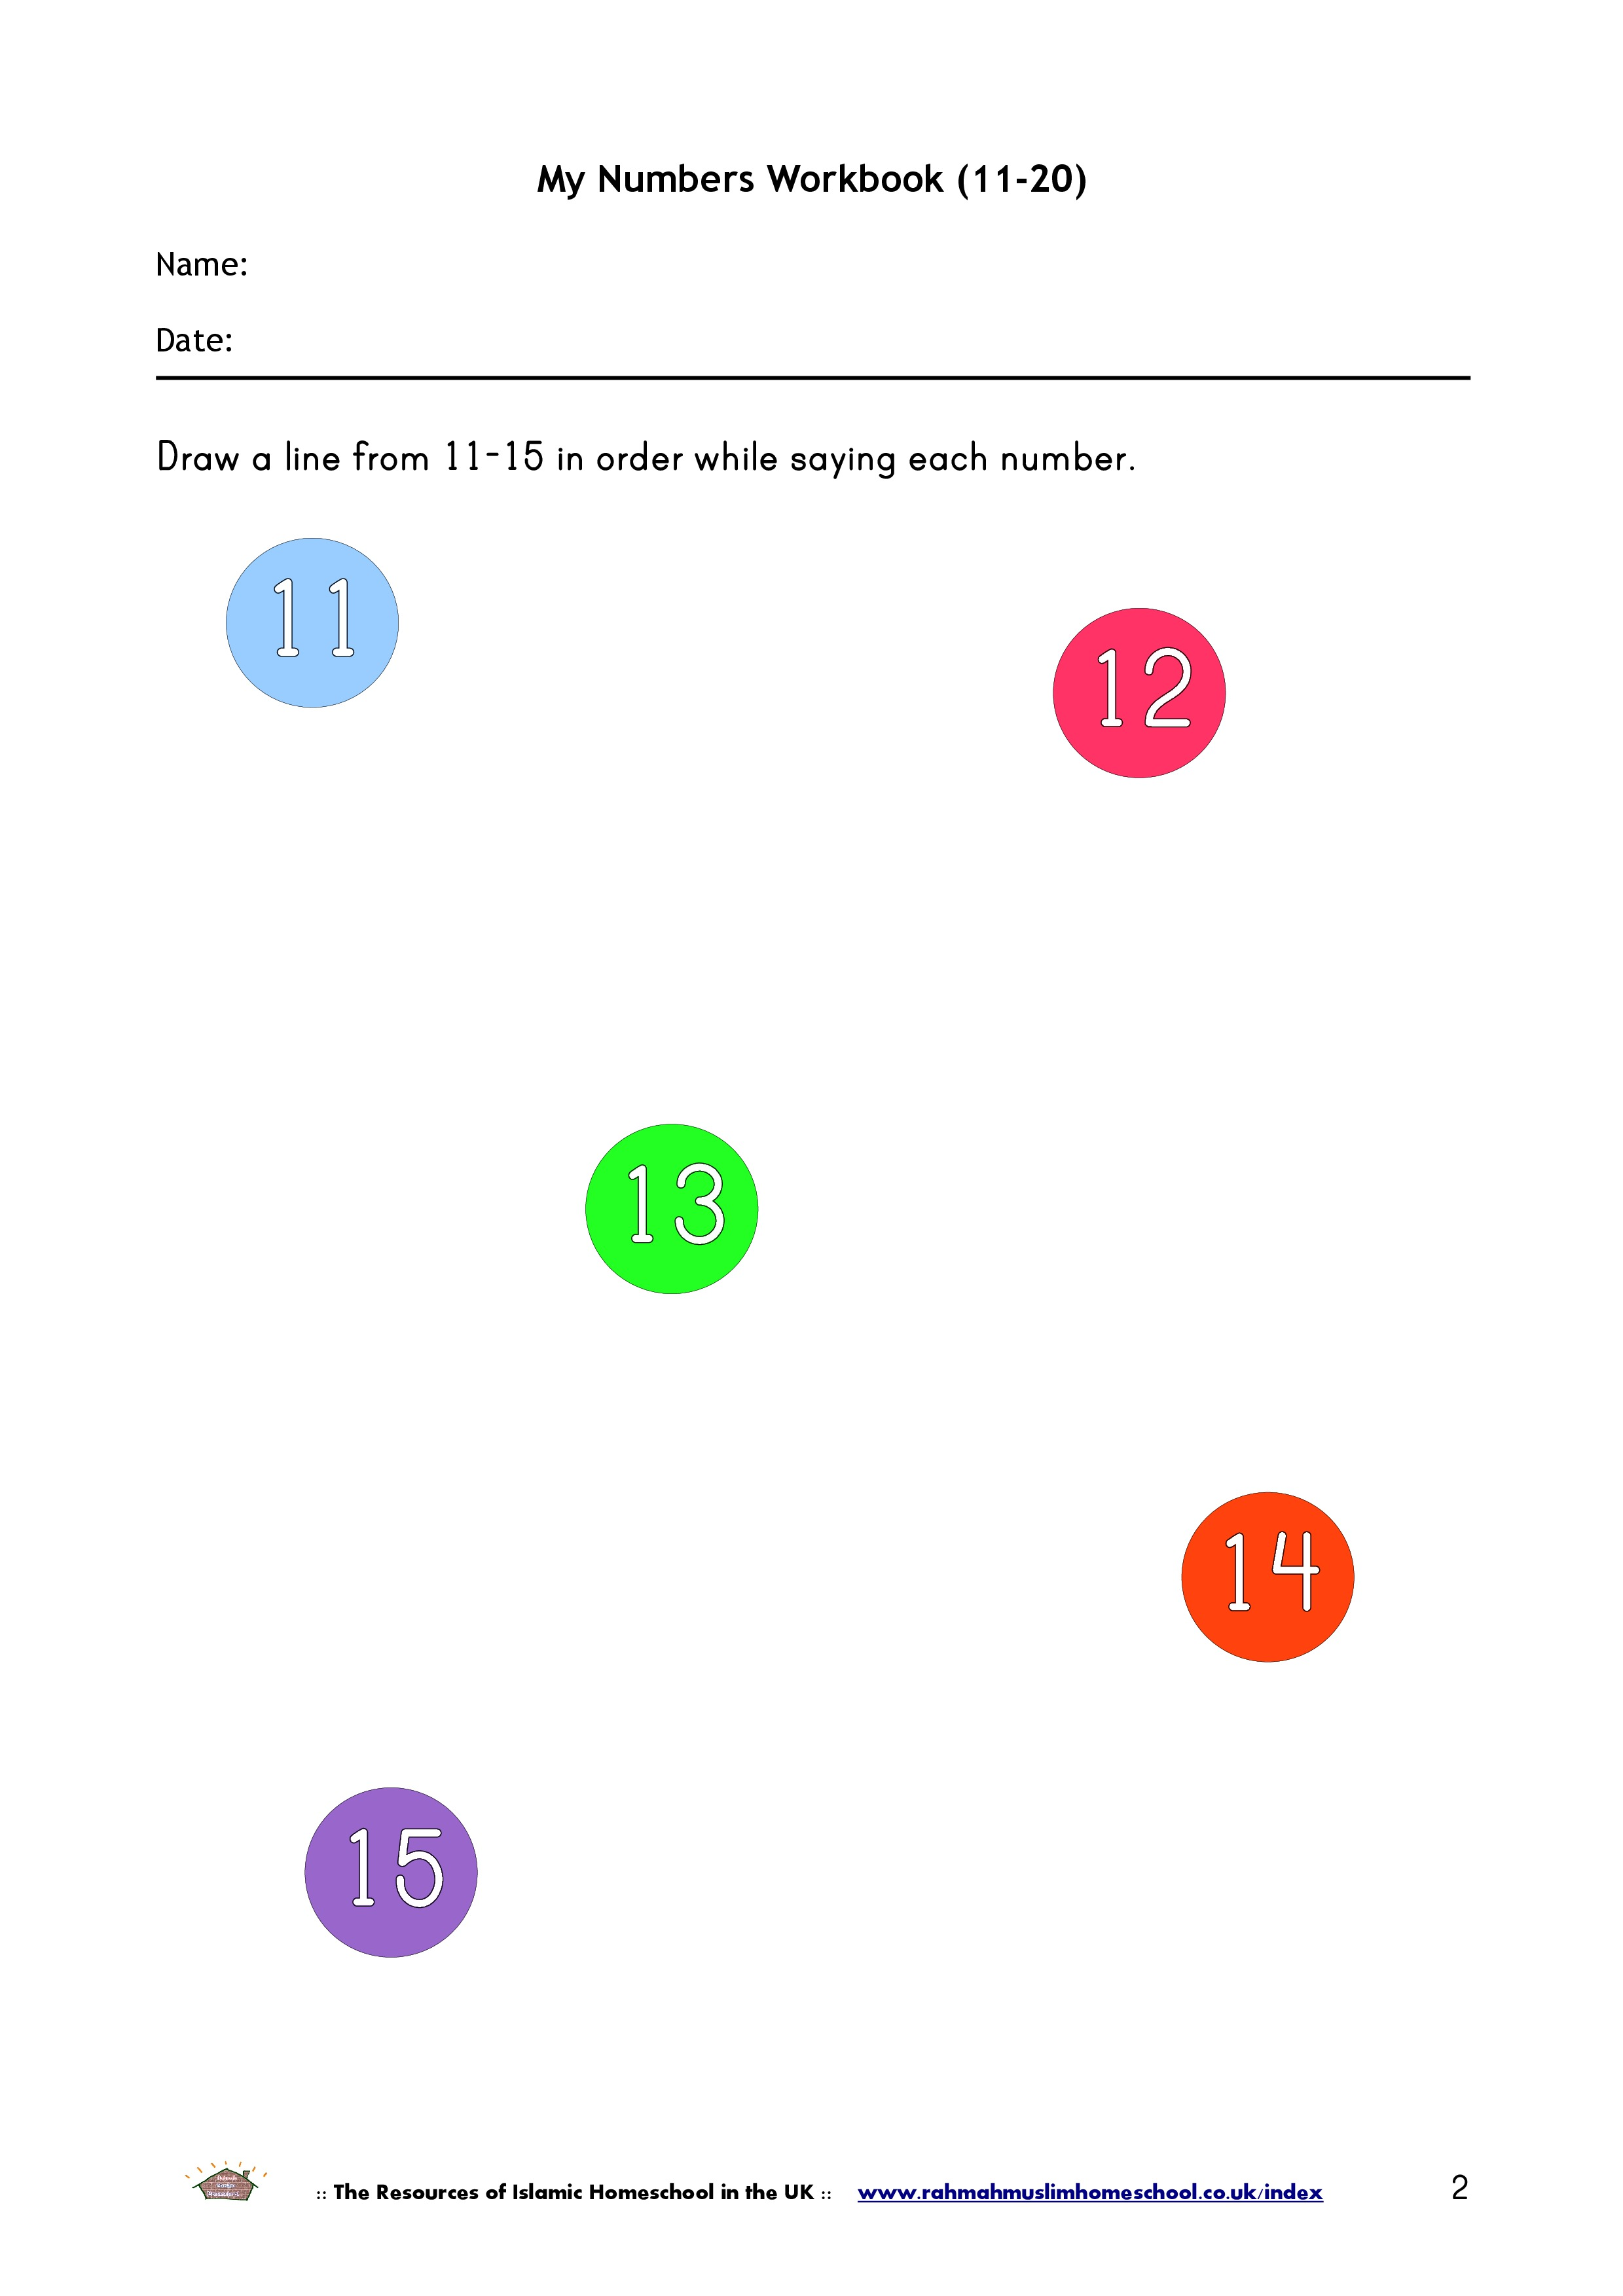 Maths: My Numbers Workbook (11-20) | The Resources of Islamic ...